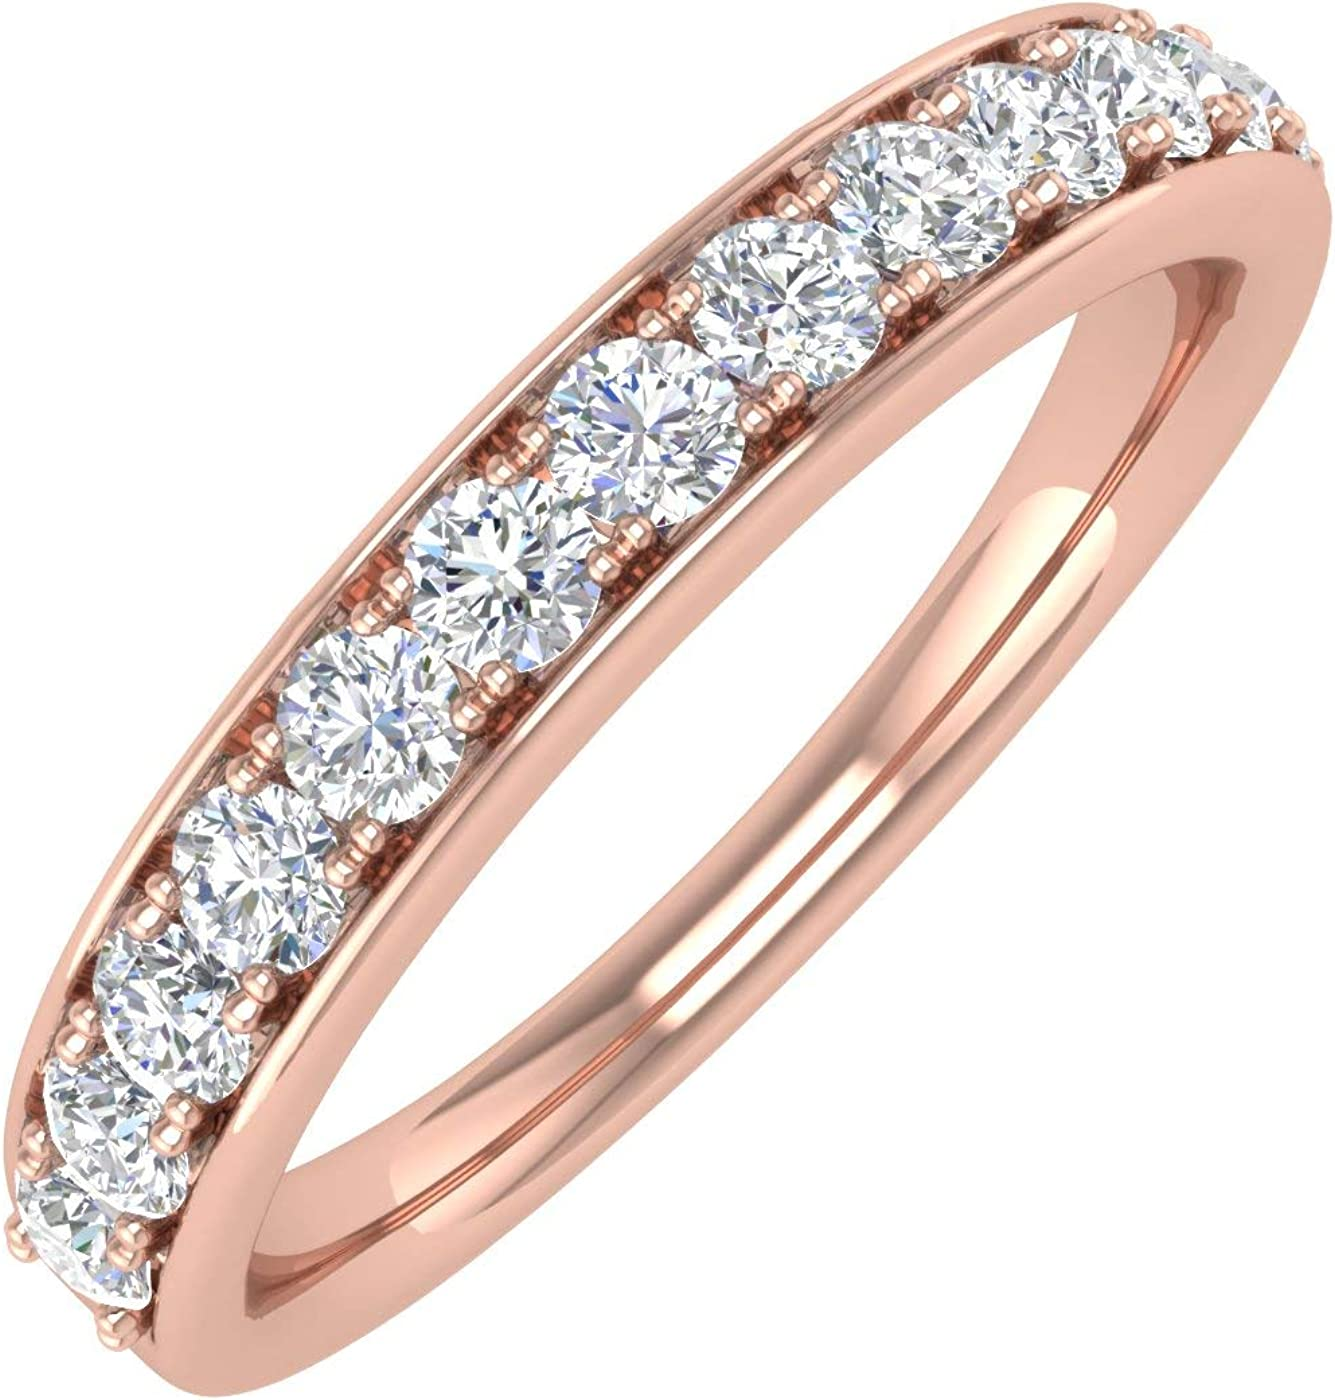 1 2 Carat Round Diamond Wedding Indianapolis Mall 14K in Gold Band Minneapolis Mall Ring